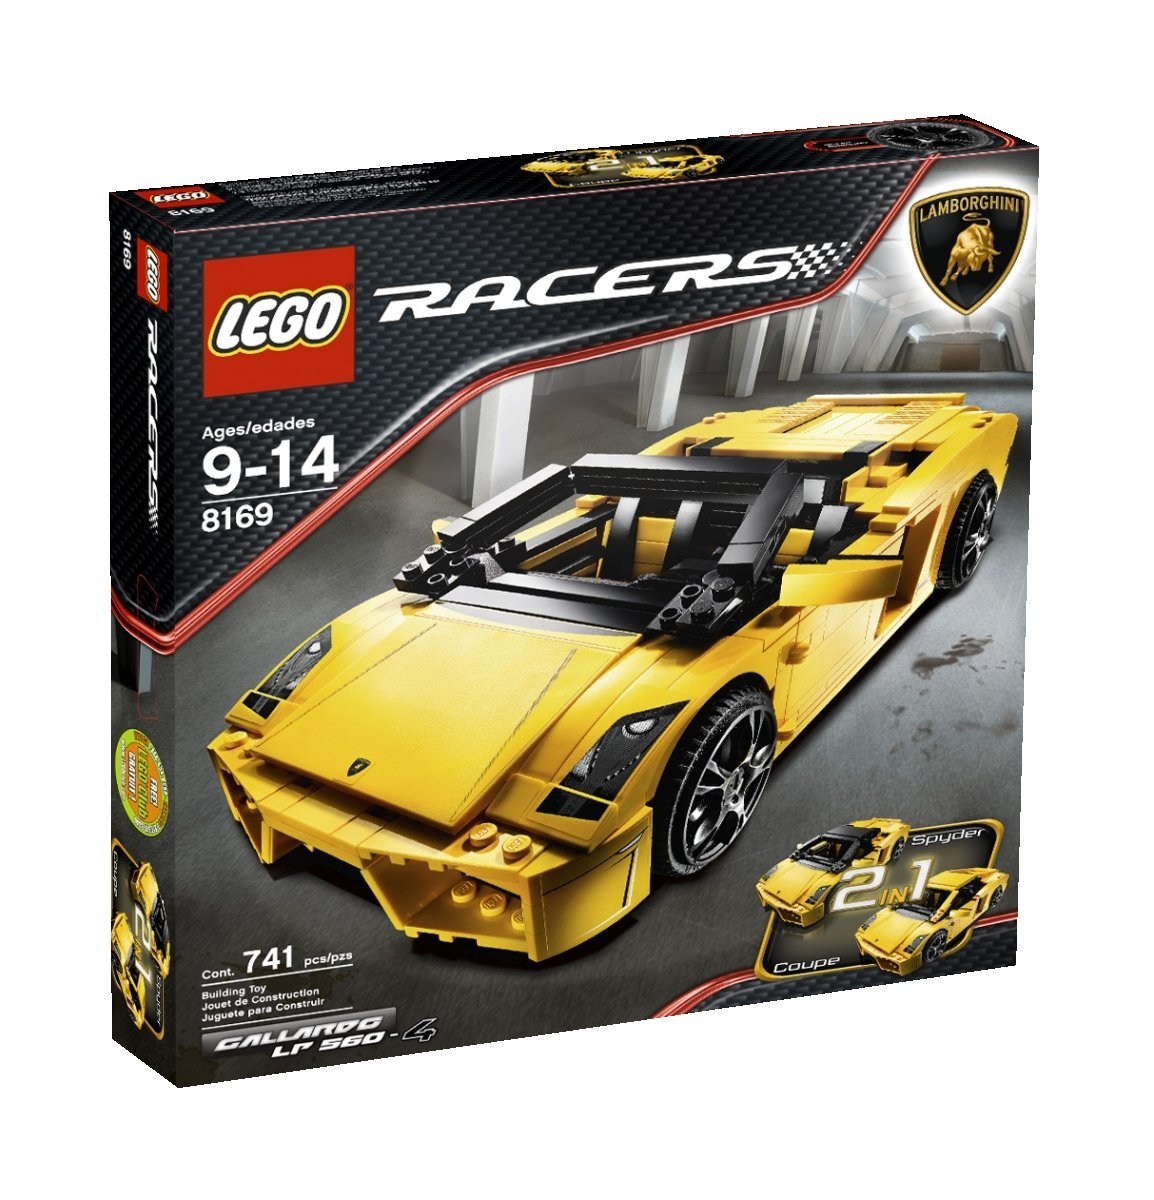 lego lamborghini gallardo lp 560 4 8169 modular brick. Black Bedroom Furniture Sets. Home Design Ideas